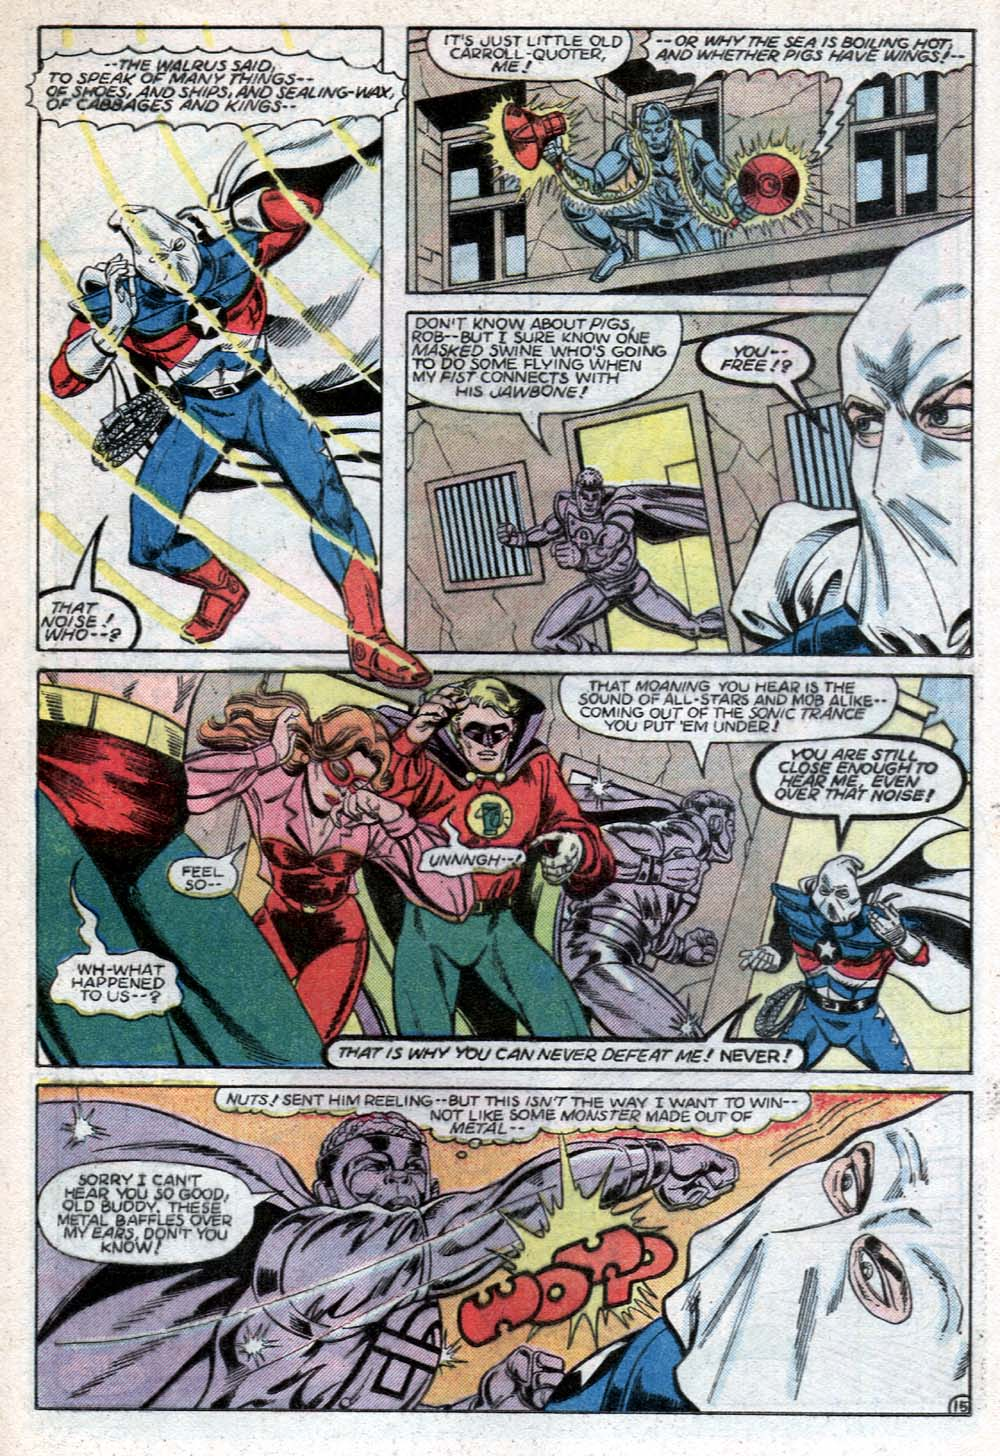 Read online All-Star Squadron comic -  Issue #40 - 16